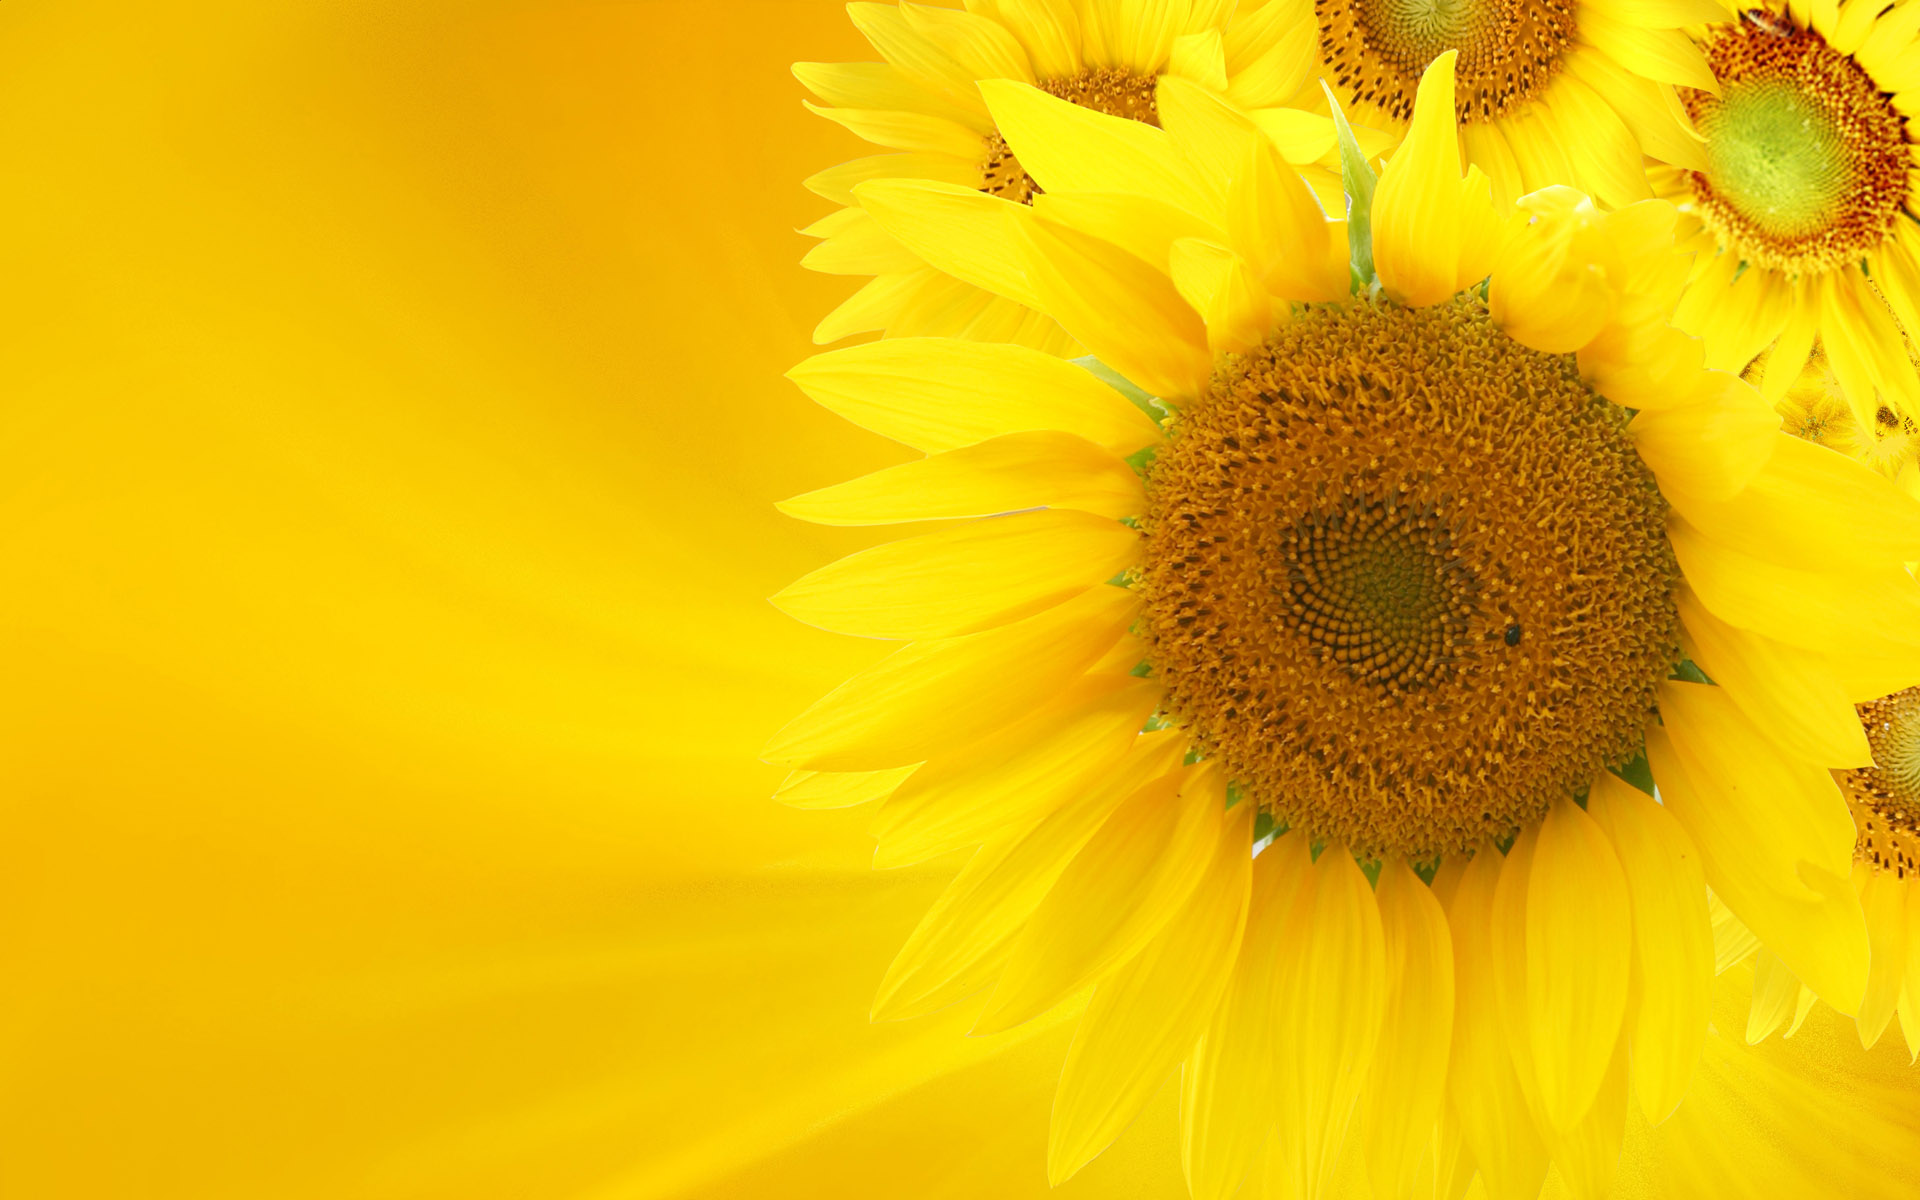 Sunflower close-up 12132